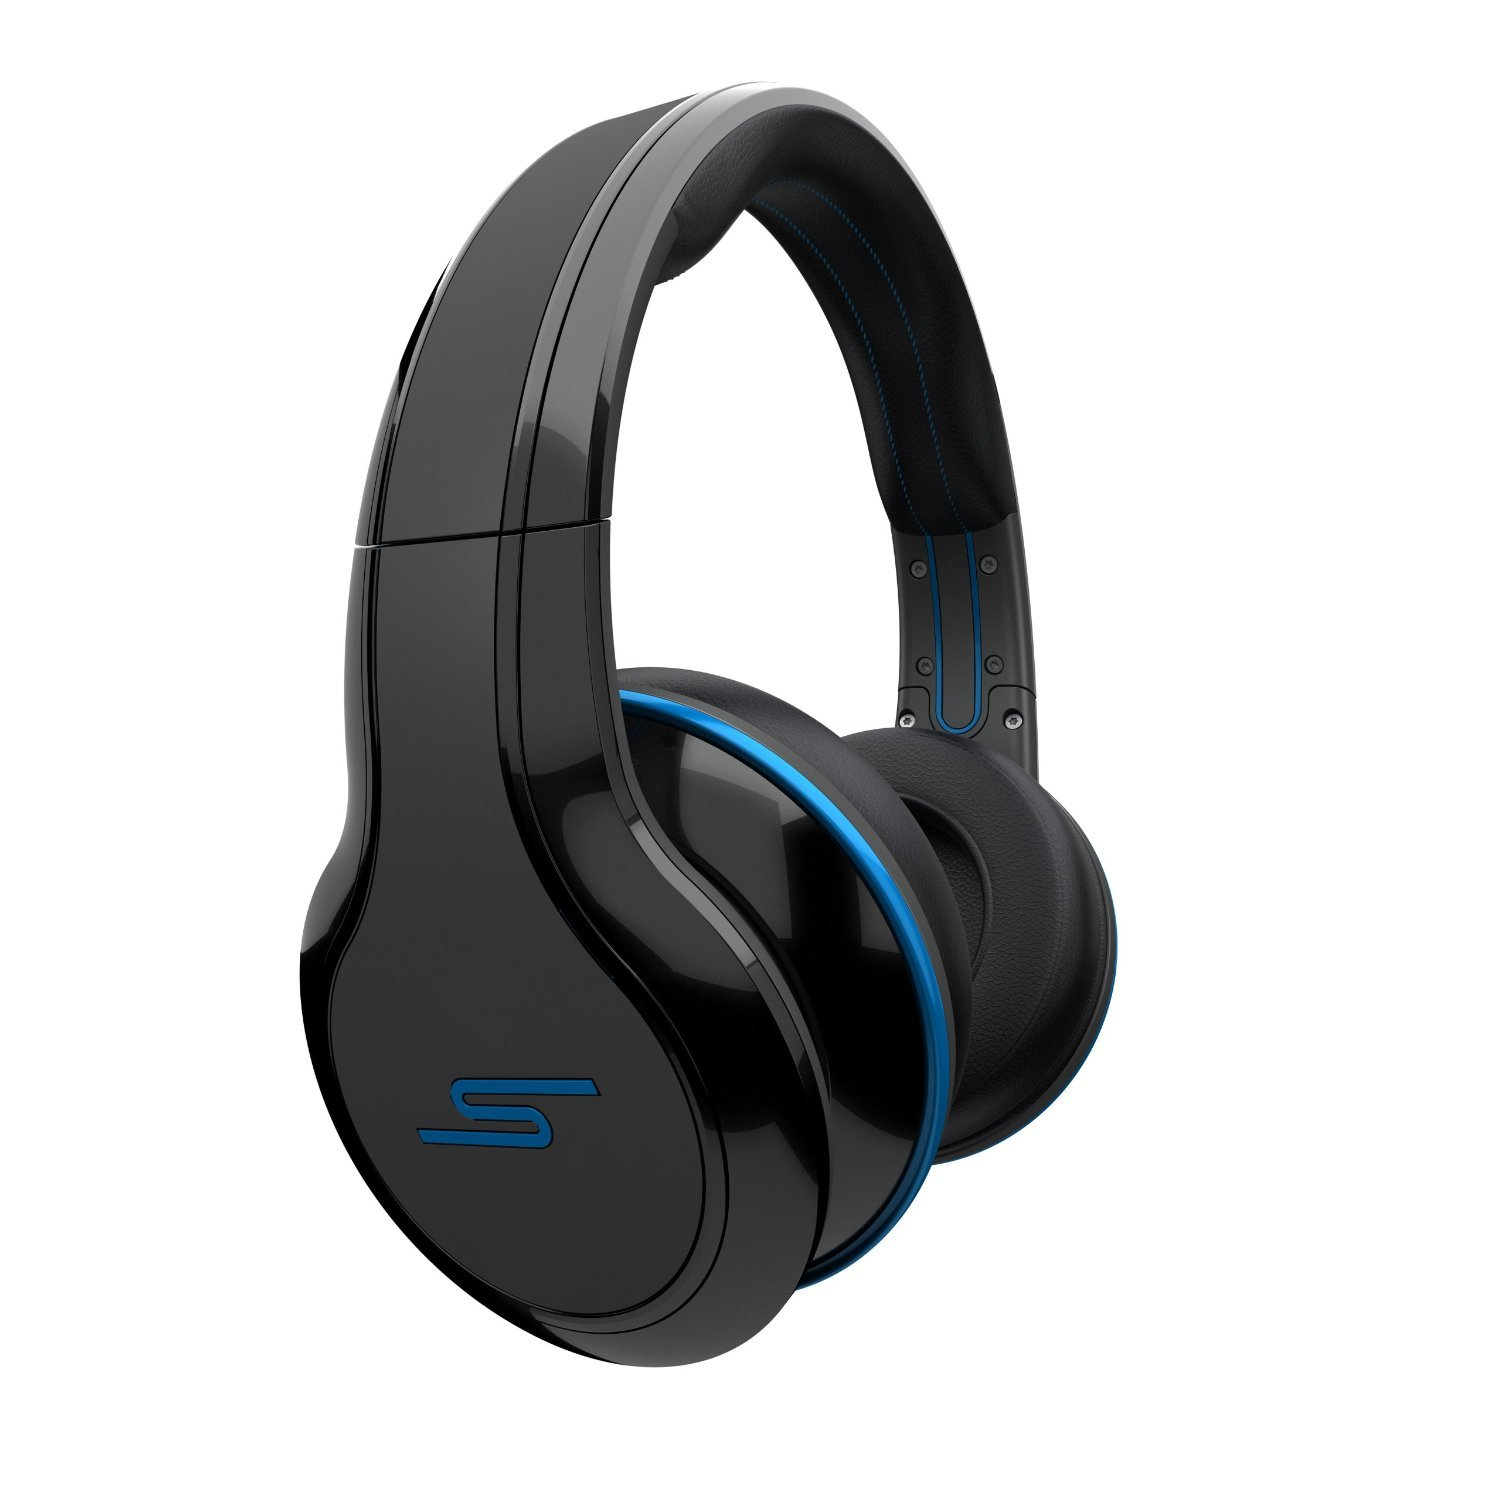 SMS Audio STREET By 50 Cent Over-Ear Wired Headphones: Amazon.co.uk ...